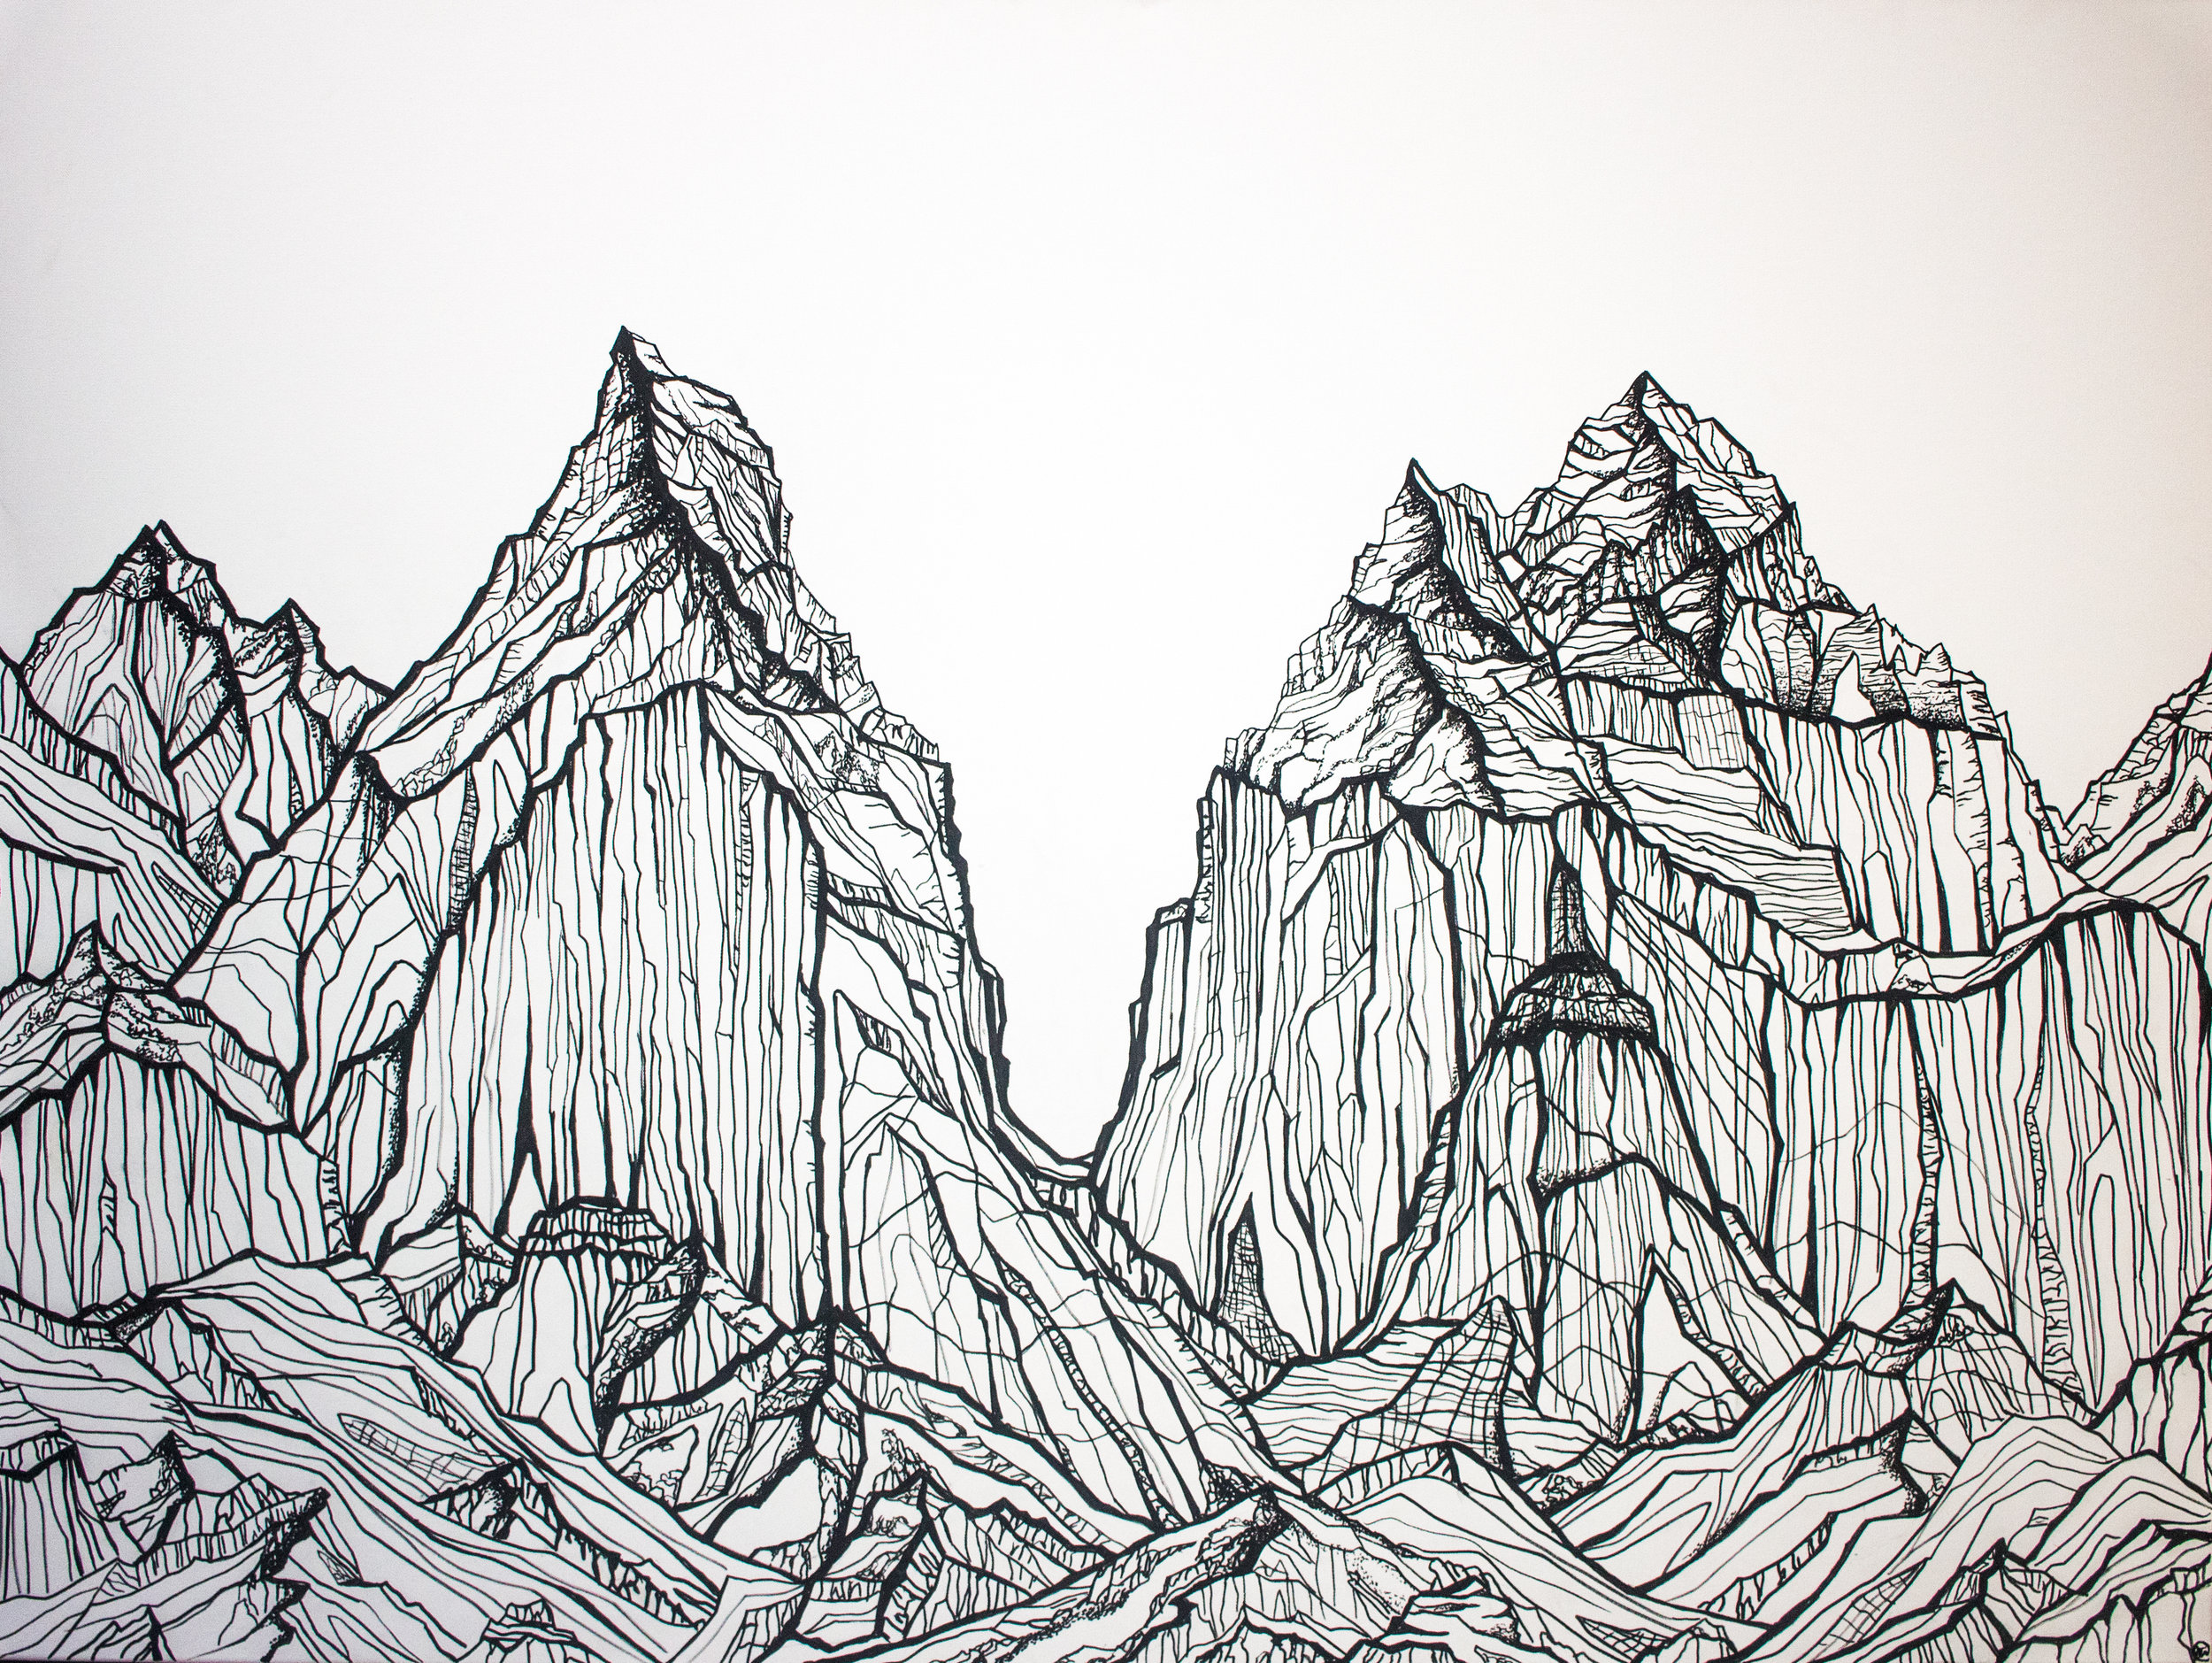 B&W mountain design.jpg